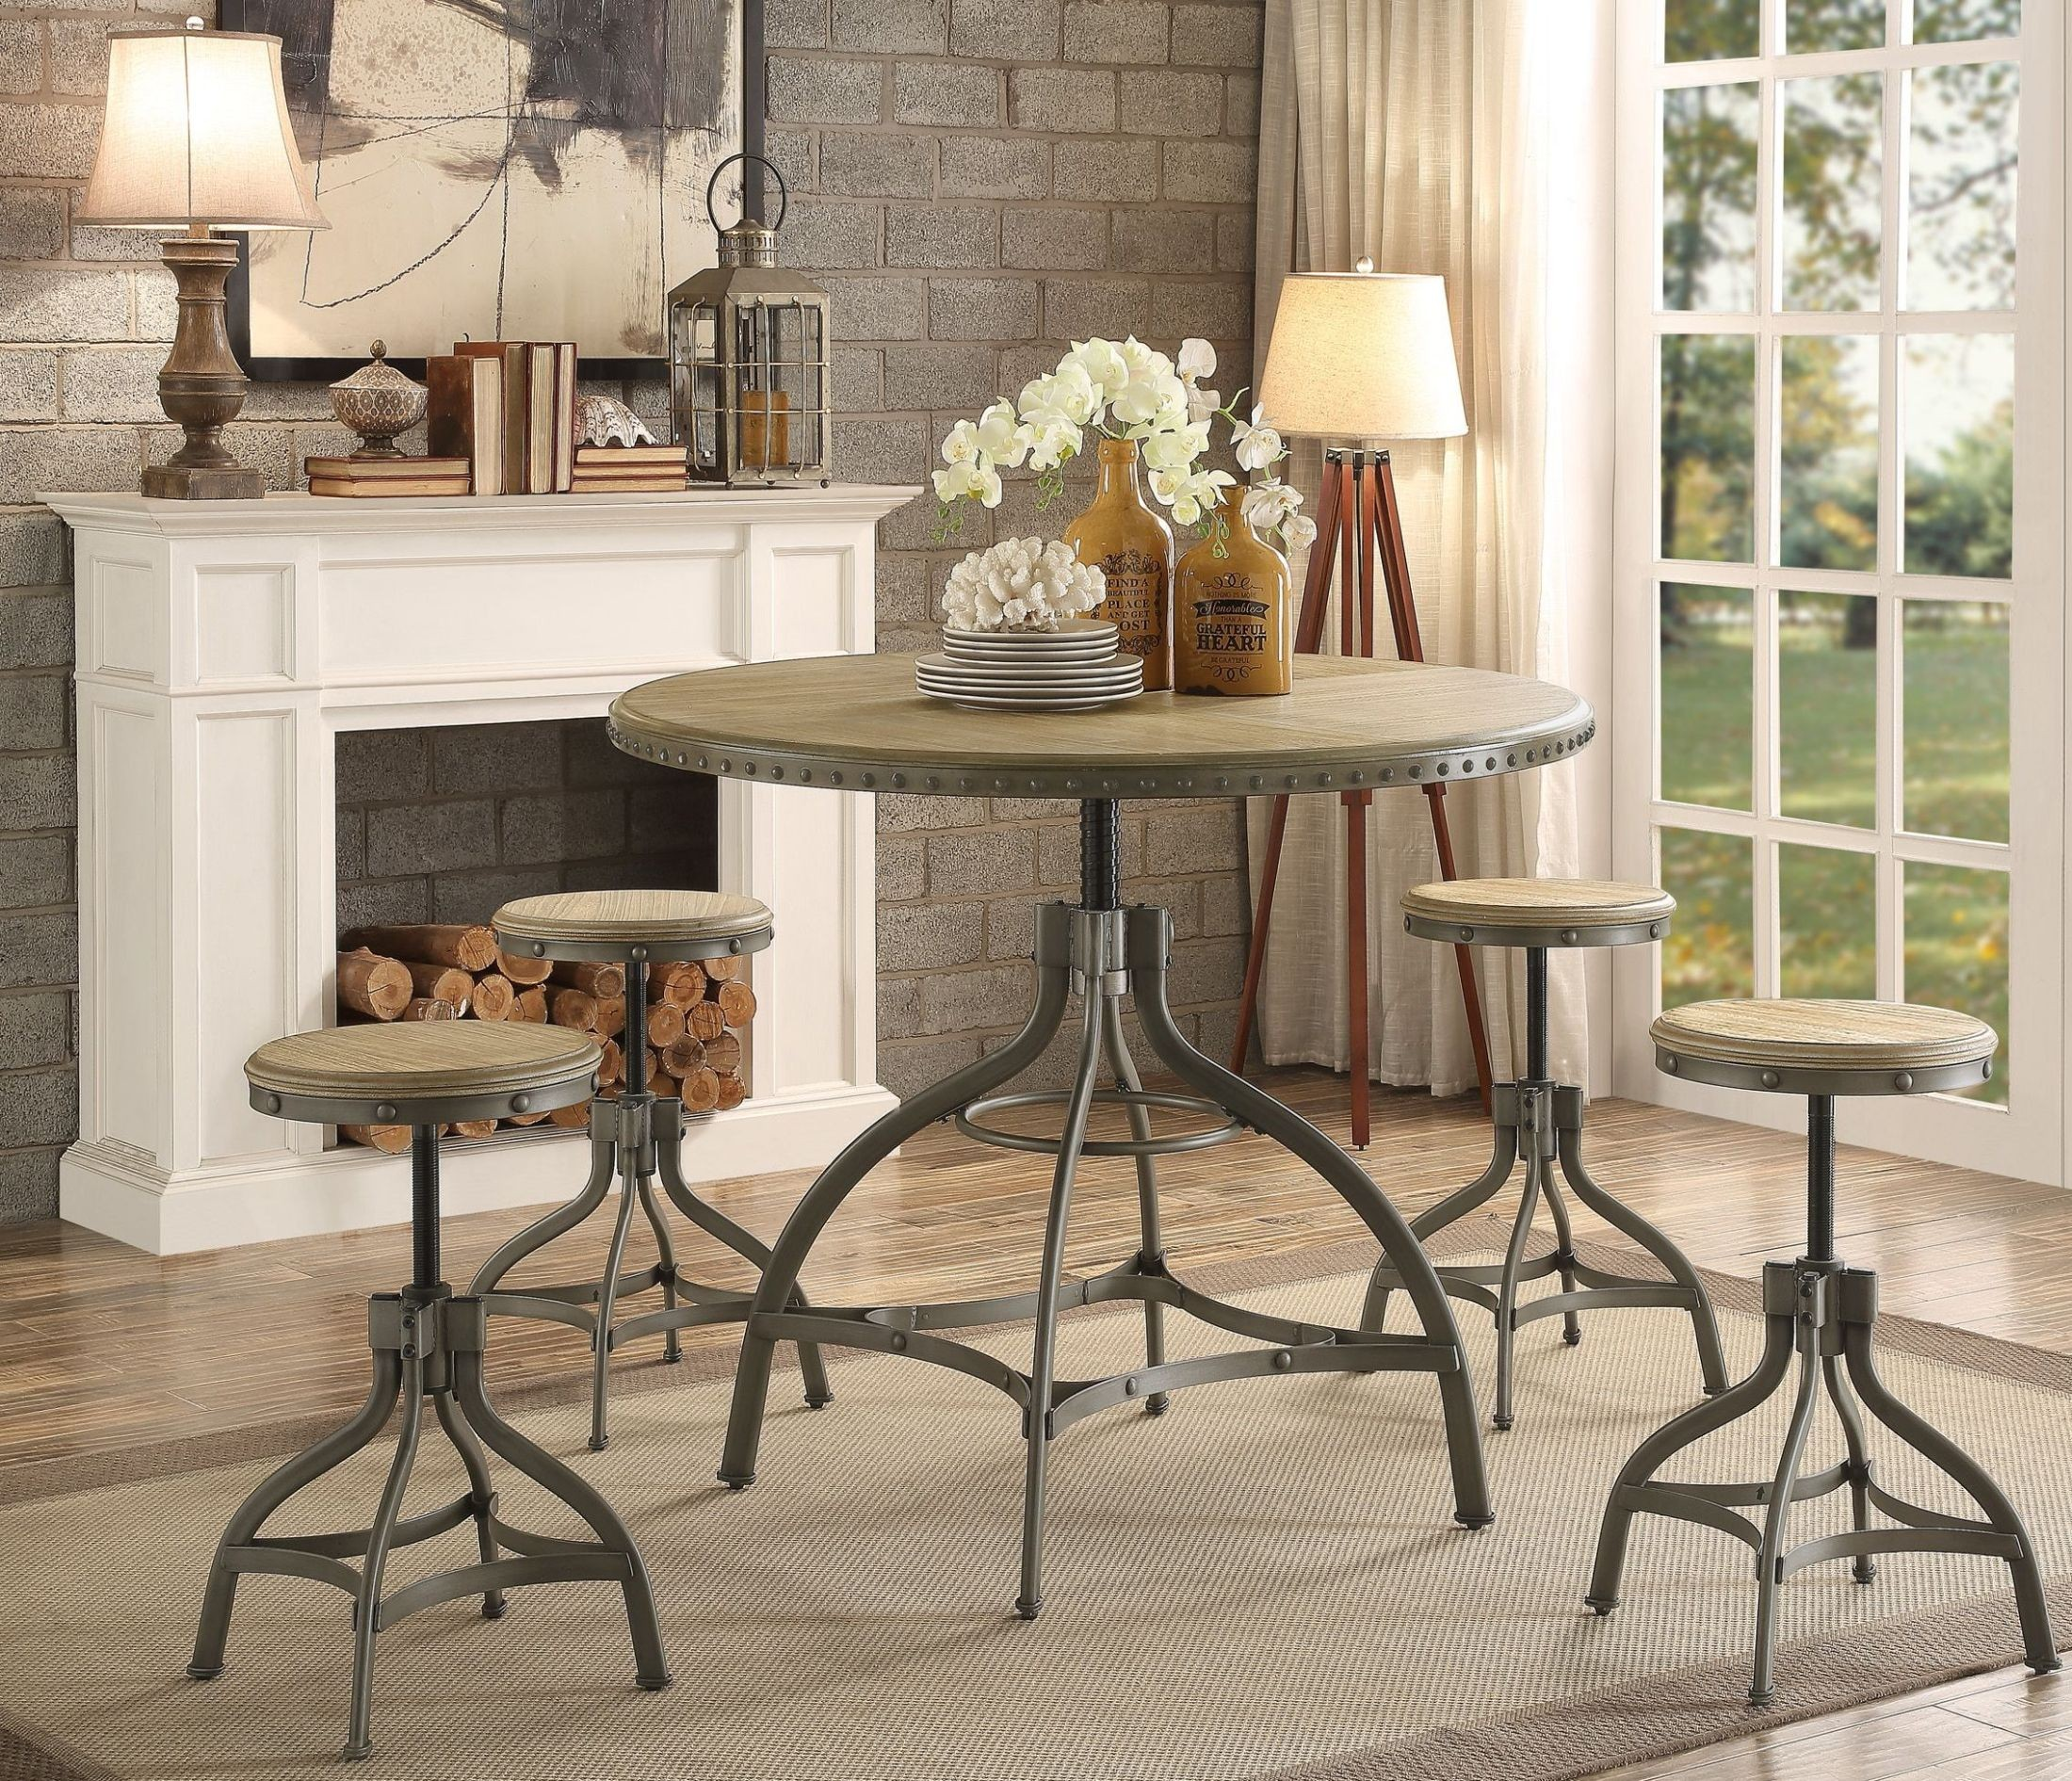 Adjustable Dining Table Set Beacher Round Adjustable Height Dining Room Set 5488 36rd